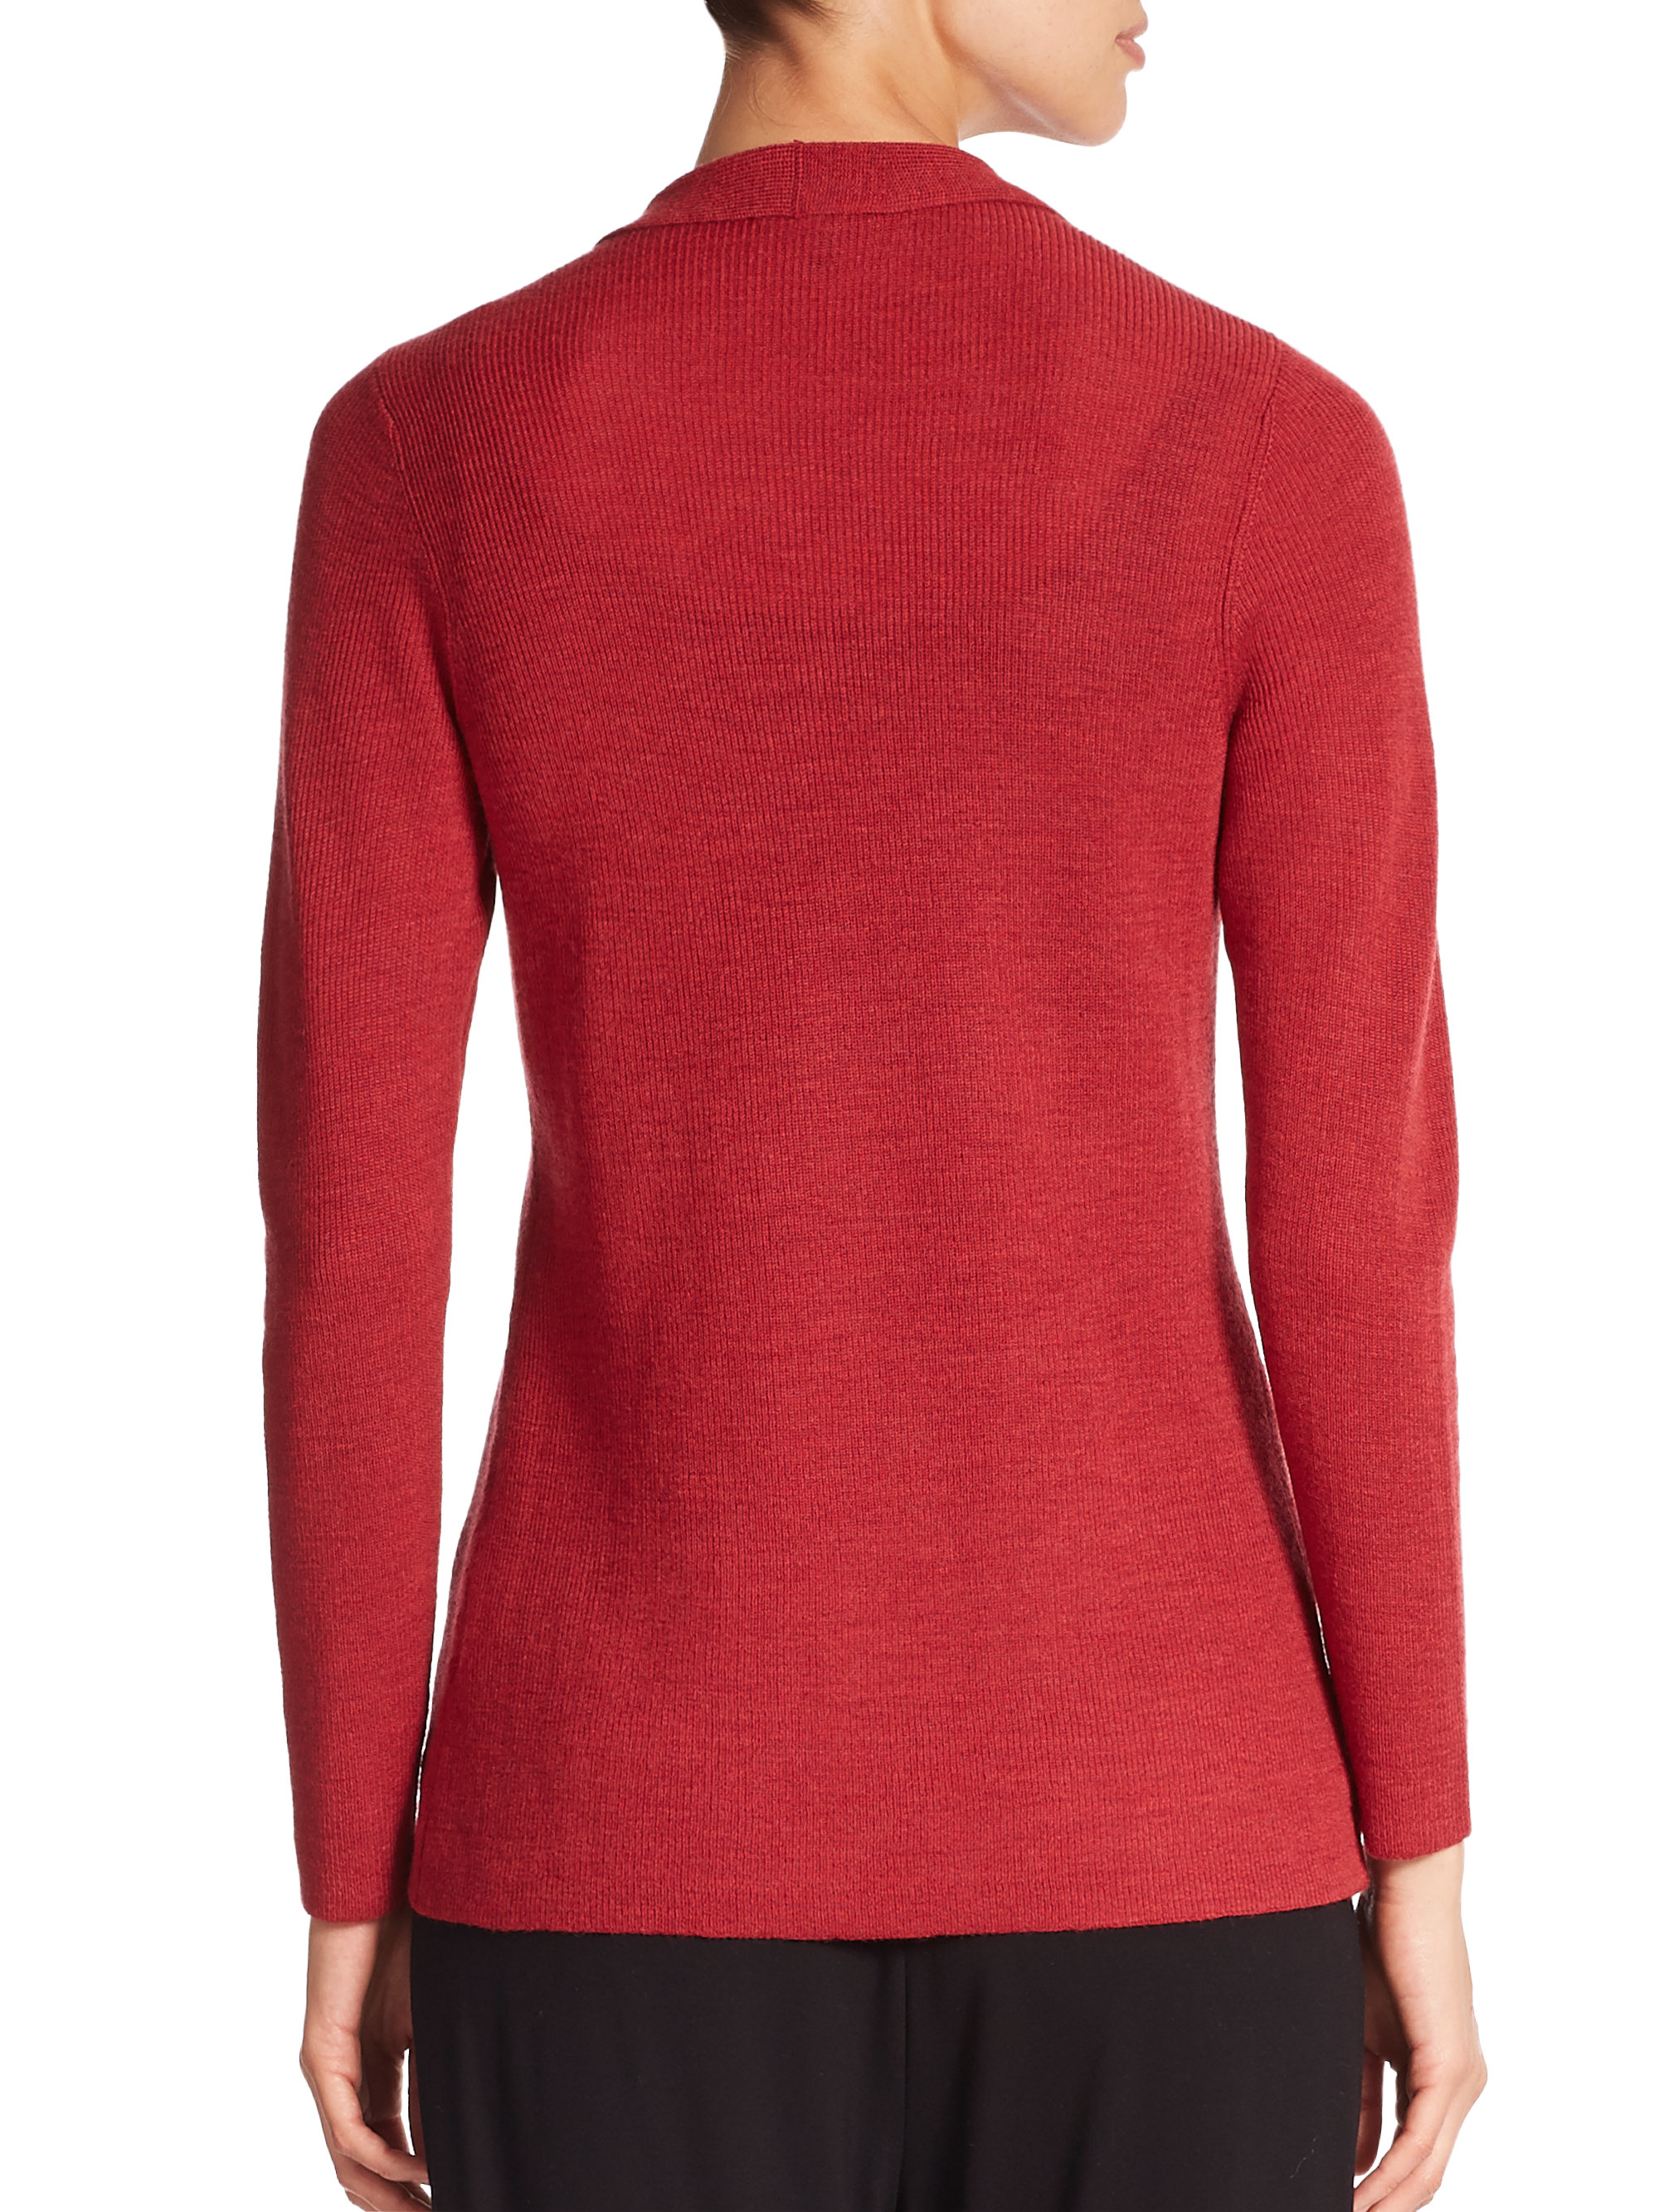 Lyst - Eileen Fisher Merino Wool Ribbed Long Cardigan in Red